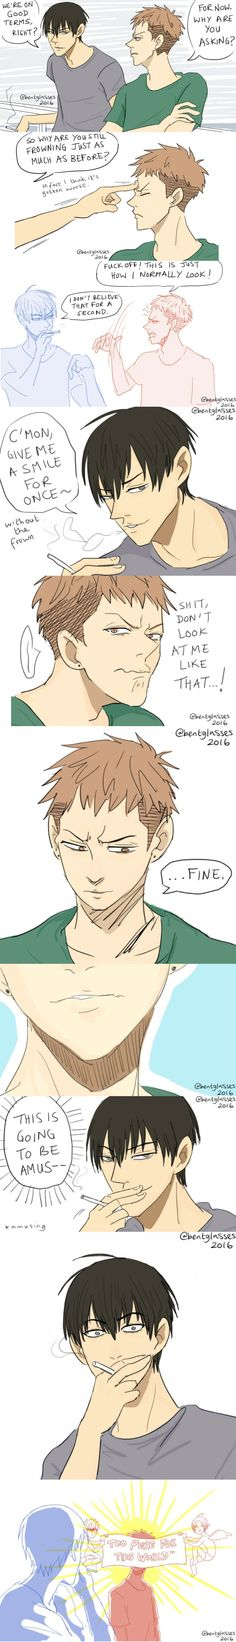 Mo Guan Shan who smile in real to He Tian! I want to see that!